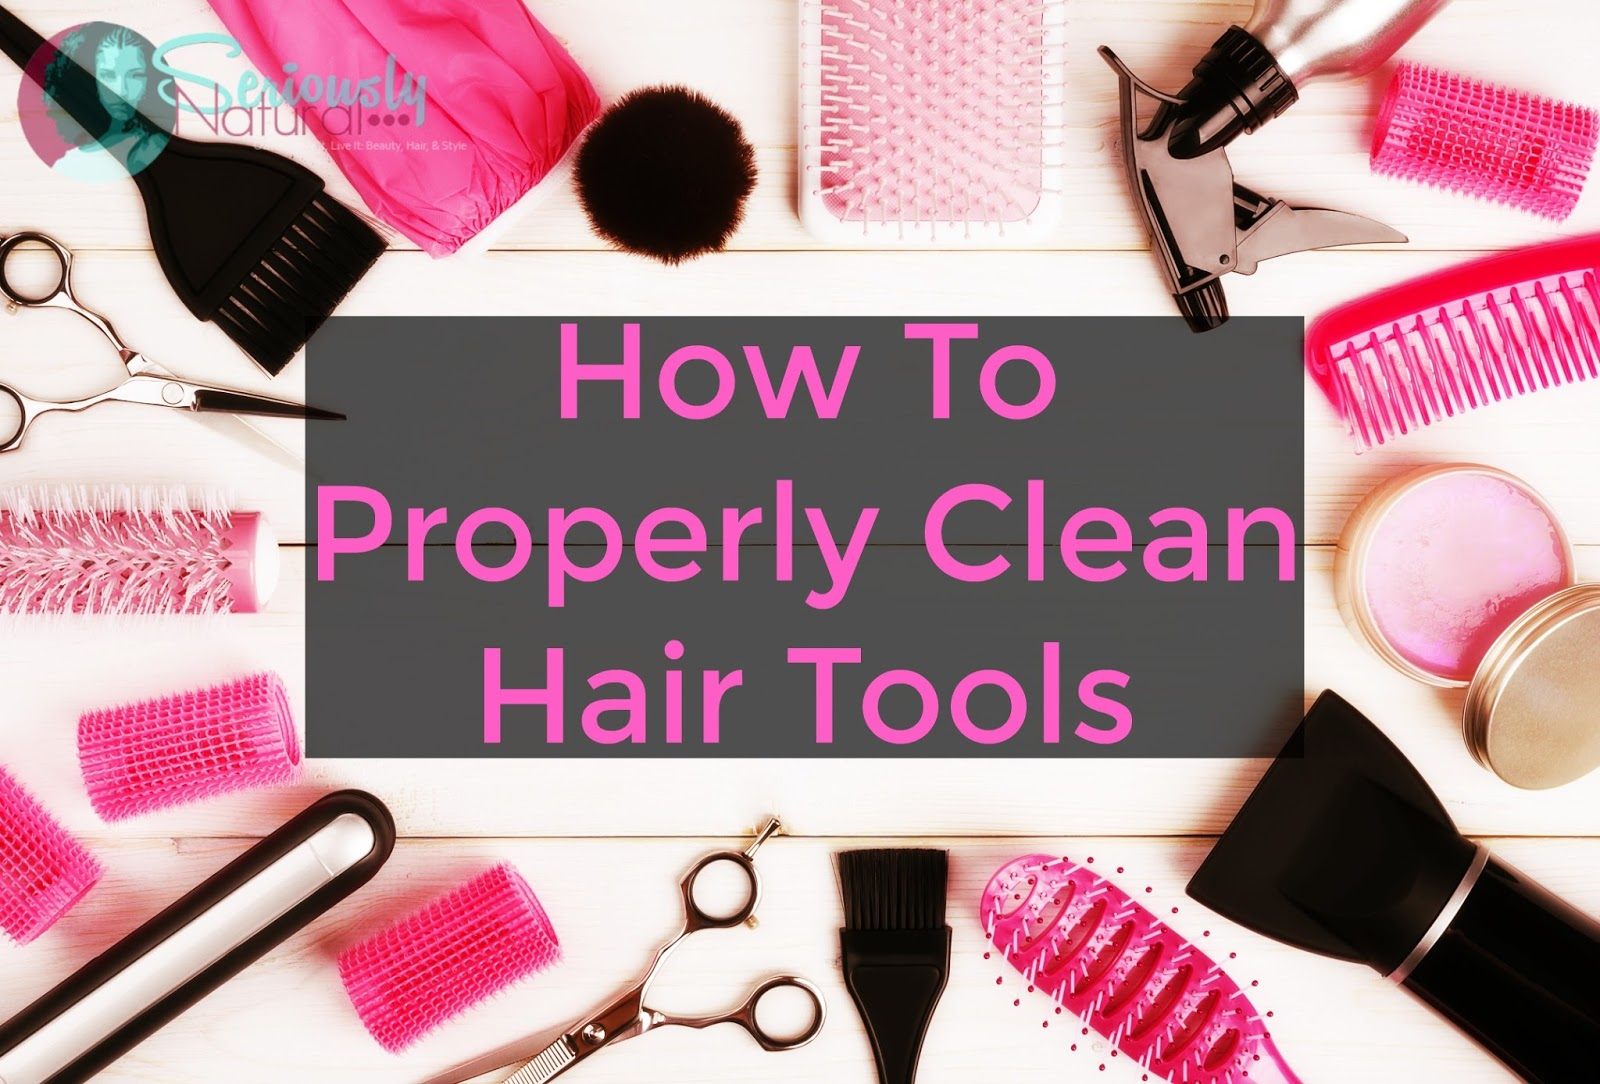 Do you know how to properly clean hair tools? How often to do it or even what to use? Check out this super informative post on how to do it and how often.